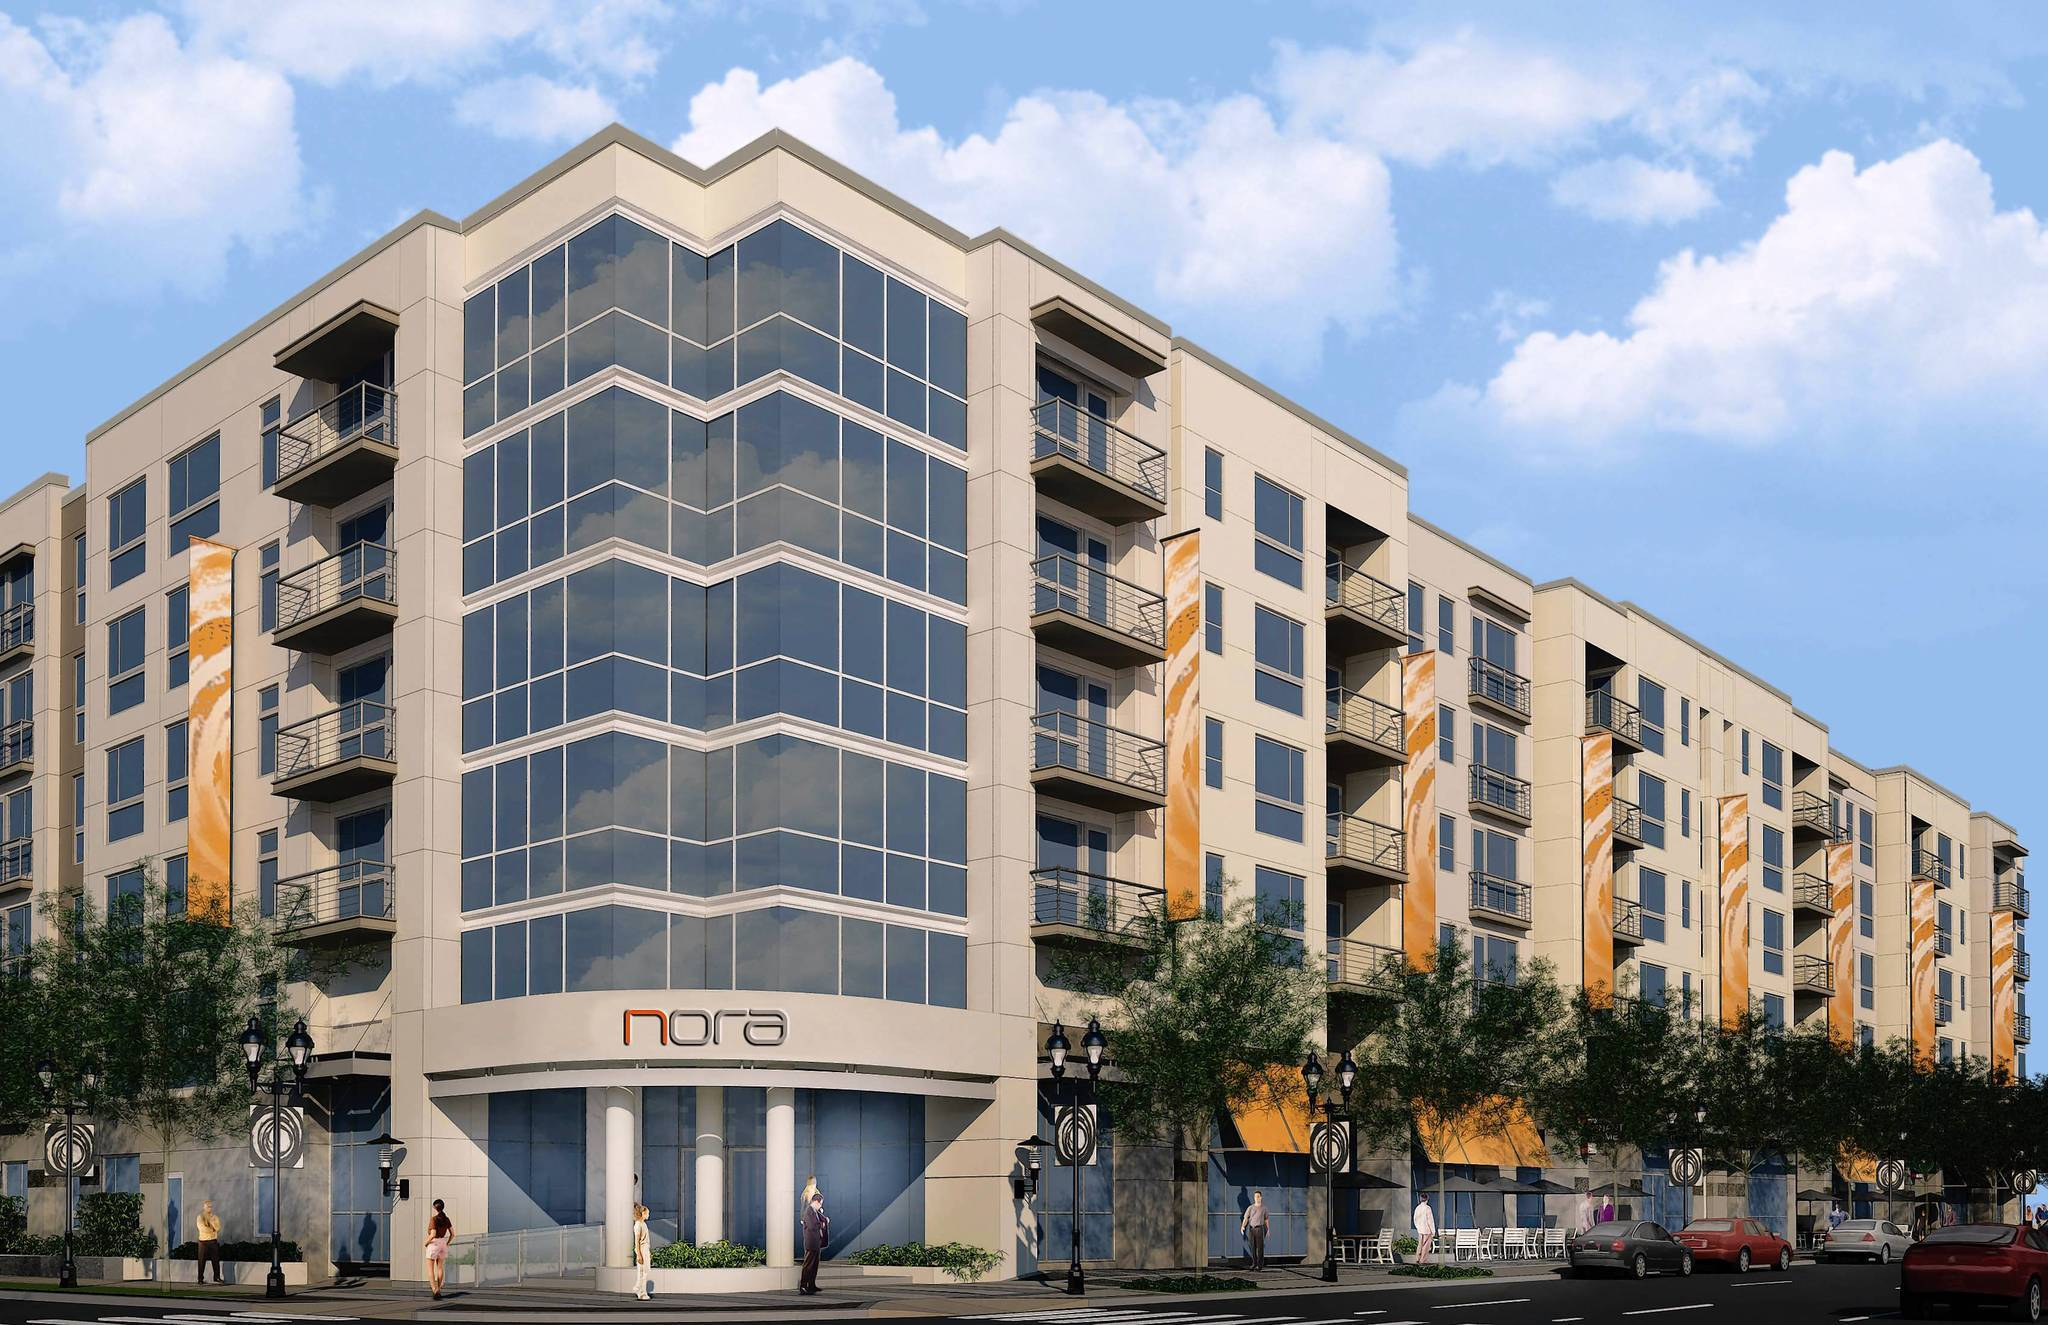 Work is under way on a 246-unit apartment project on North Orange Avenue. Nora, being developed by GDC Properties, is slated to open in spring 2014.